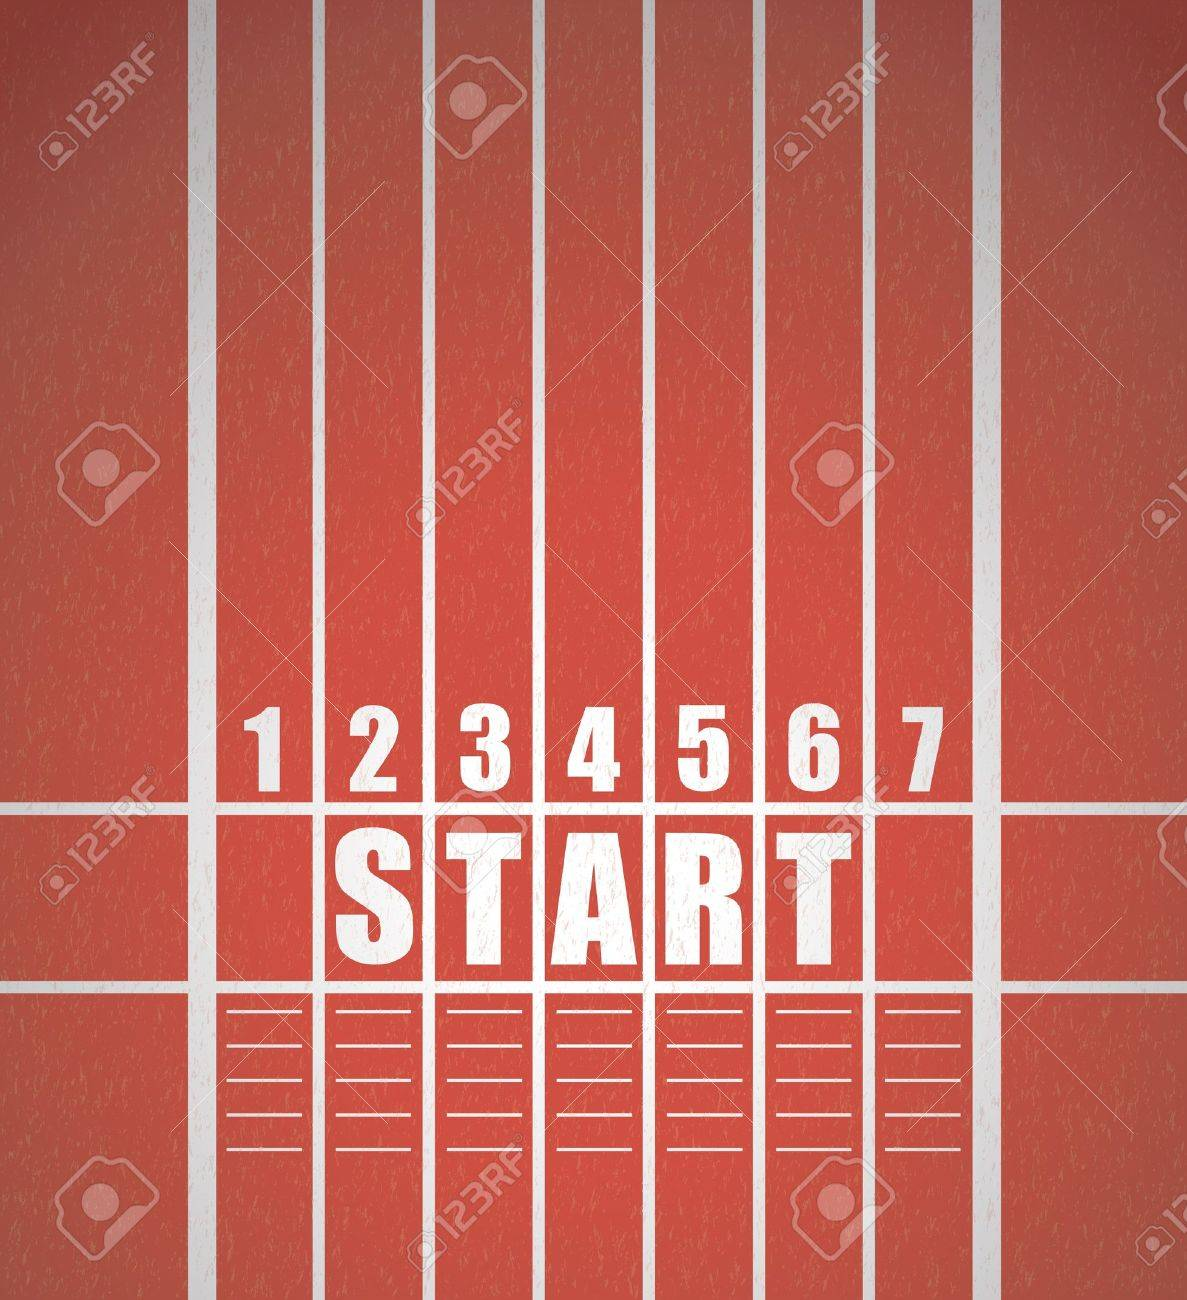 Start track  line on a red running track Stock Vector - 14596143